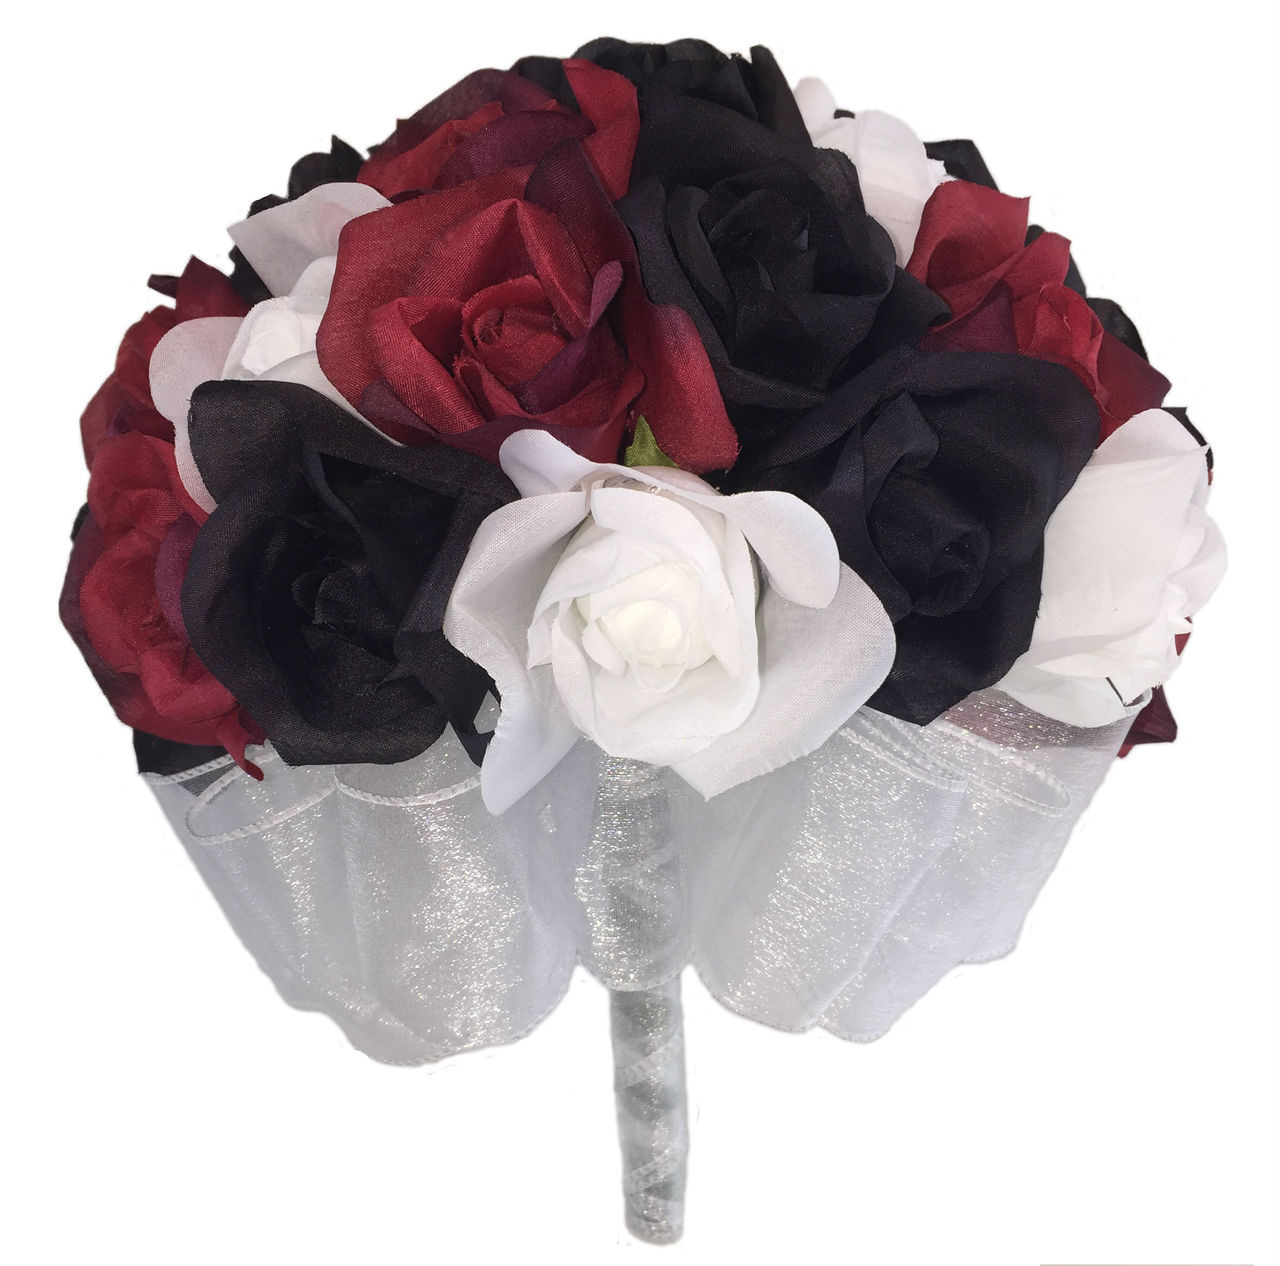 Red Black White Rose Bouquet Wedding Silk Wedding Flowers Cheap Bridal Bouquets Bridesmaid Bouquets Artificial Wedding Bouquets Two Dozen Roses Thebridesbouquet Com